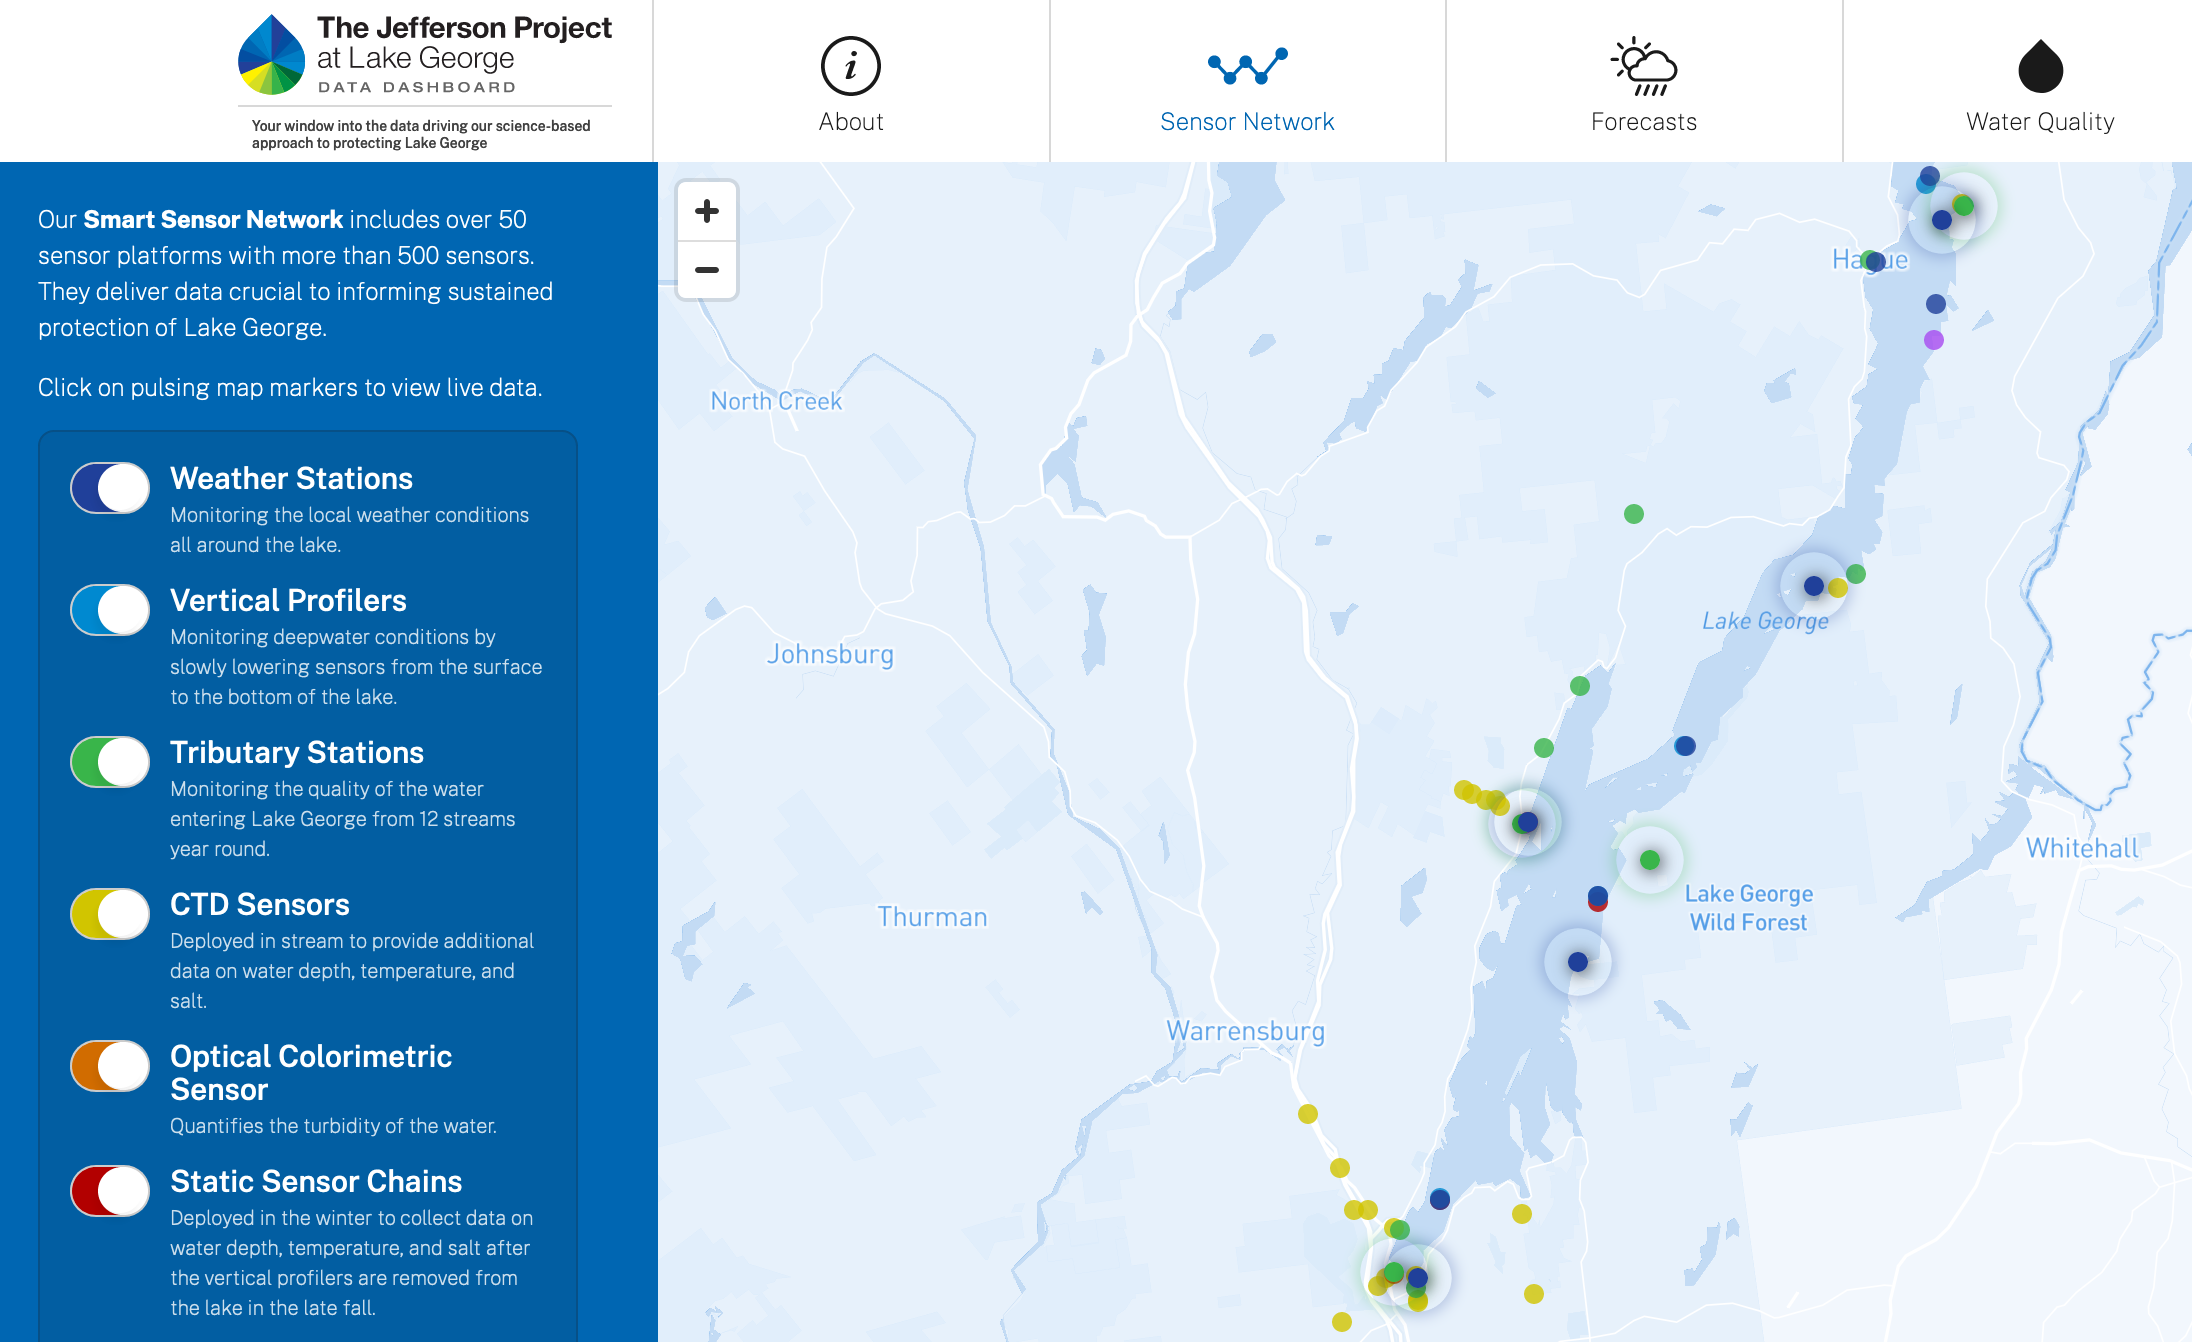 Jefferson Project Makes Lake George Science Data Publicly Available Through New Digital Dashboard - Rensselaer Polytechnic Institute